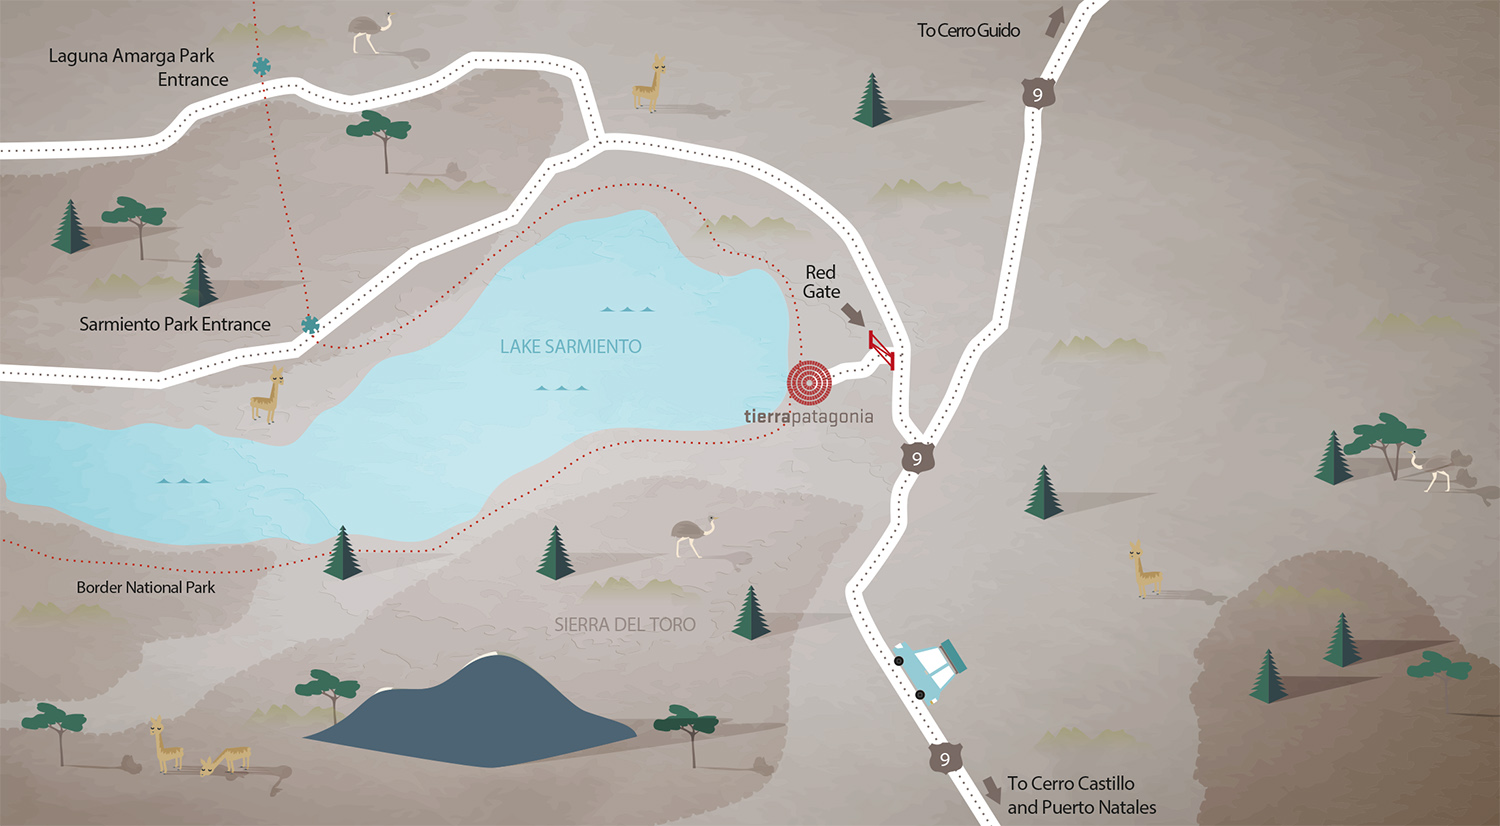 Our large Torres del Paine map is great for planning daily excursions